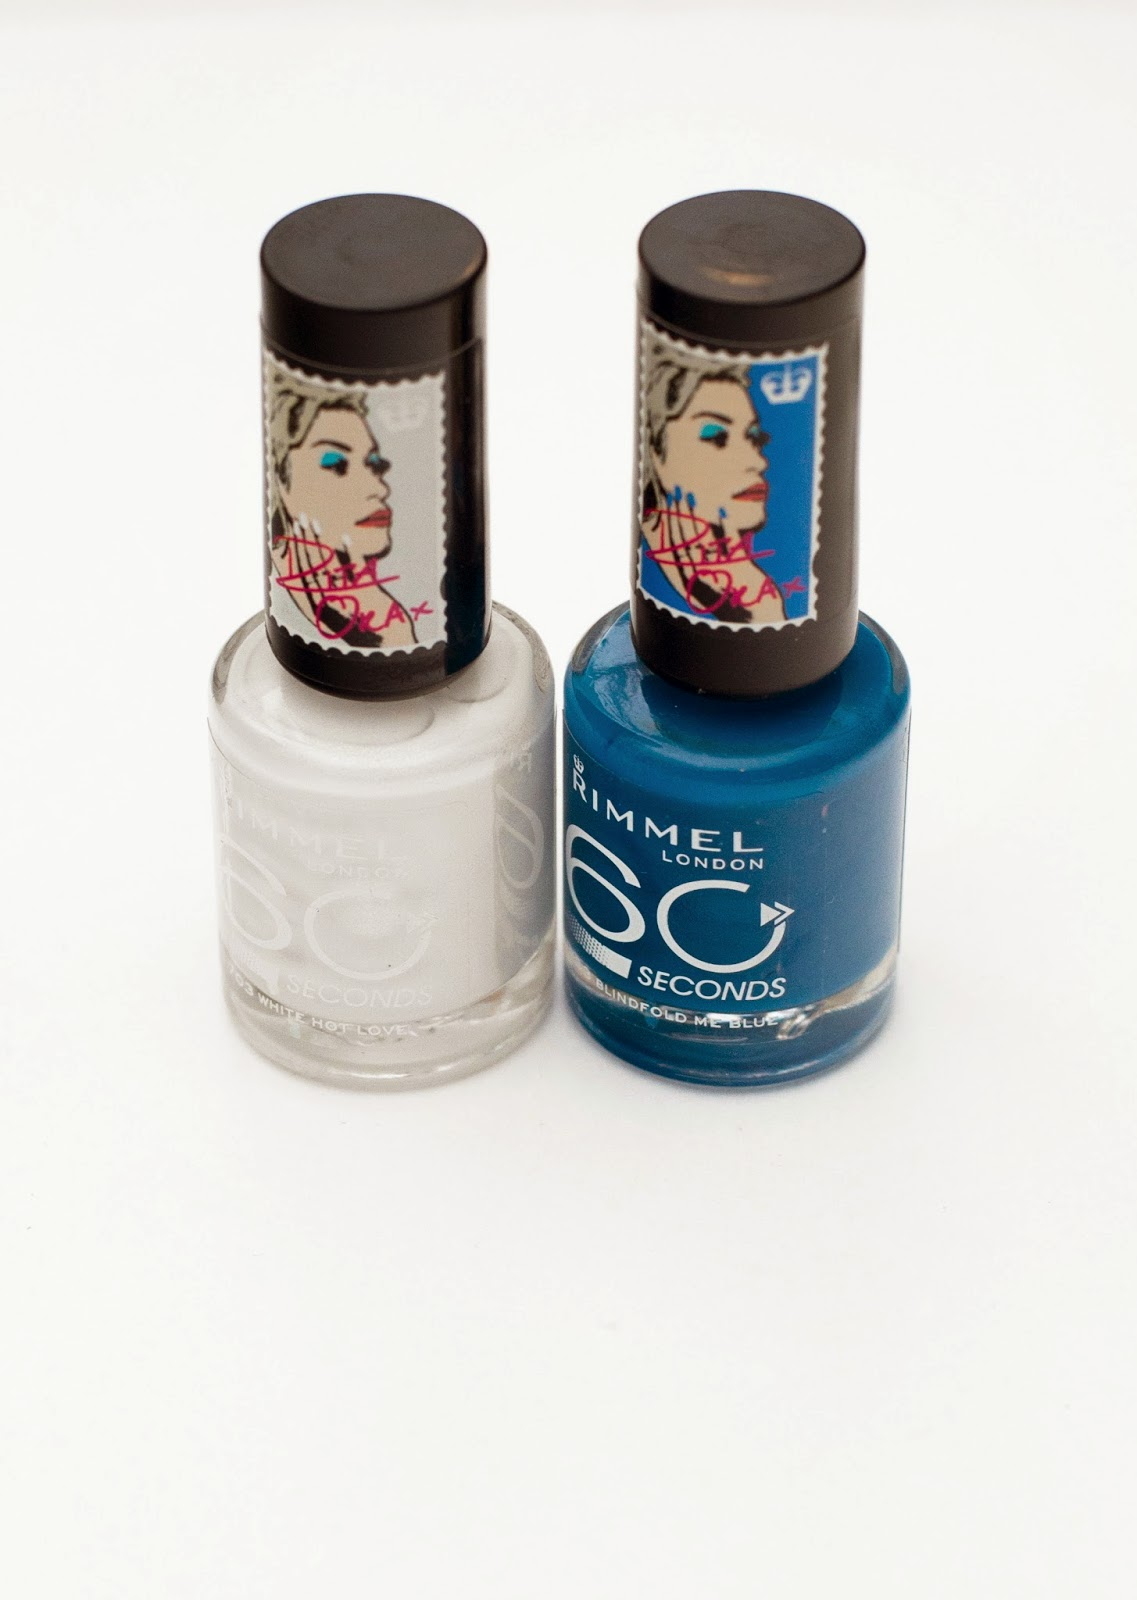 nails polish, rimmel, 60 second, rita ora, hands, nails